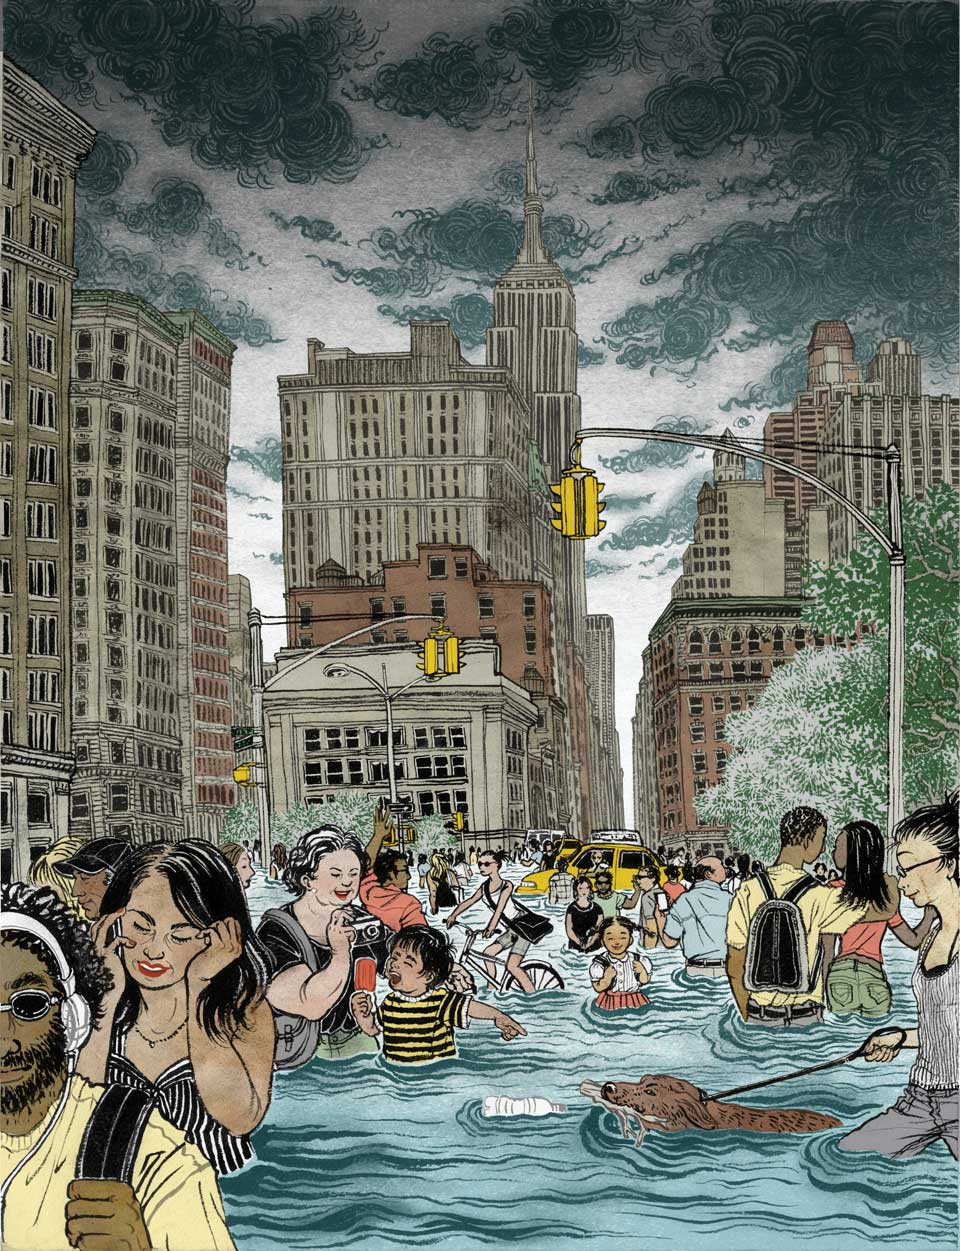 Image credit: http://yukoart.com/work/mother-jones-under-water/